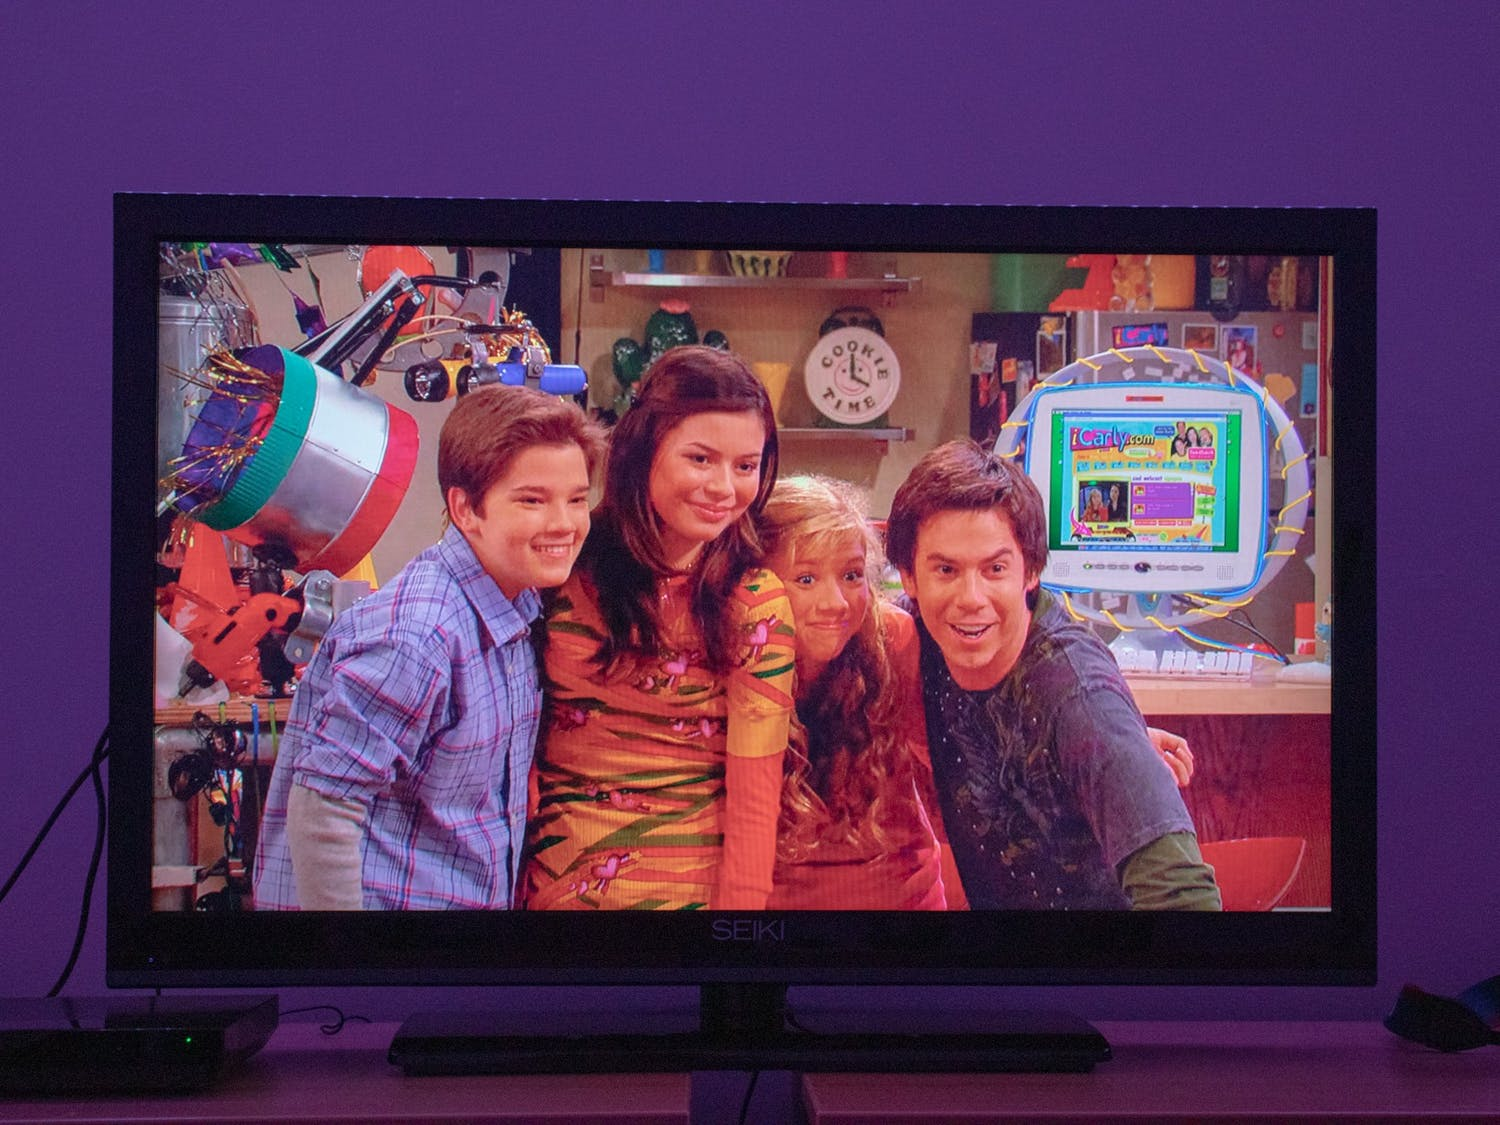 DTH Photo Illustration. iCarly was recently added to Netflix, and we want to know: which iCarly character are you?